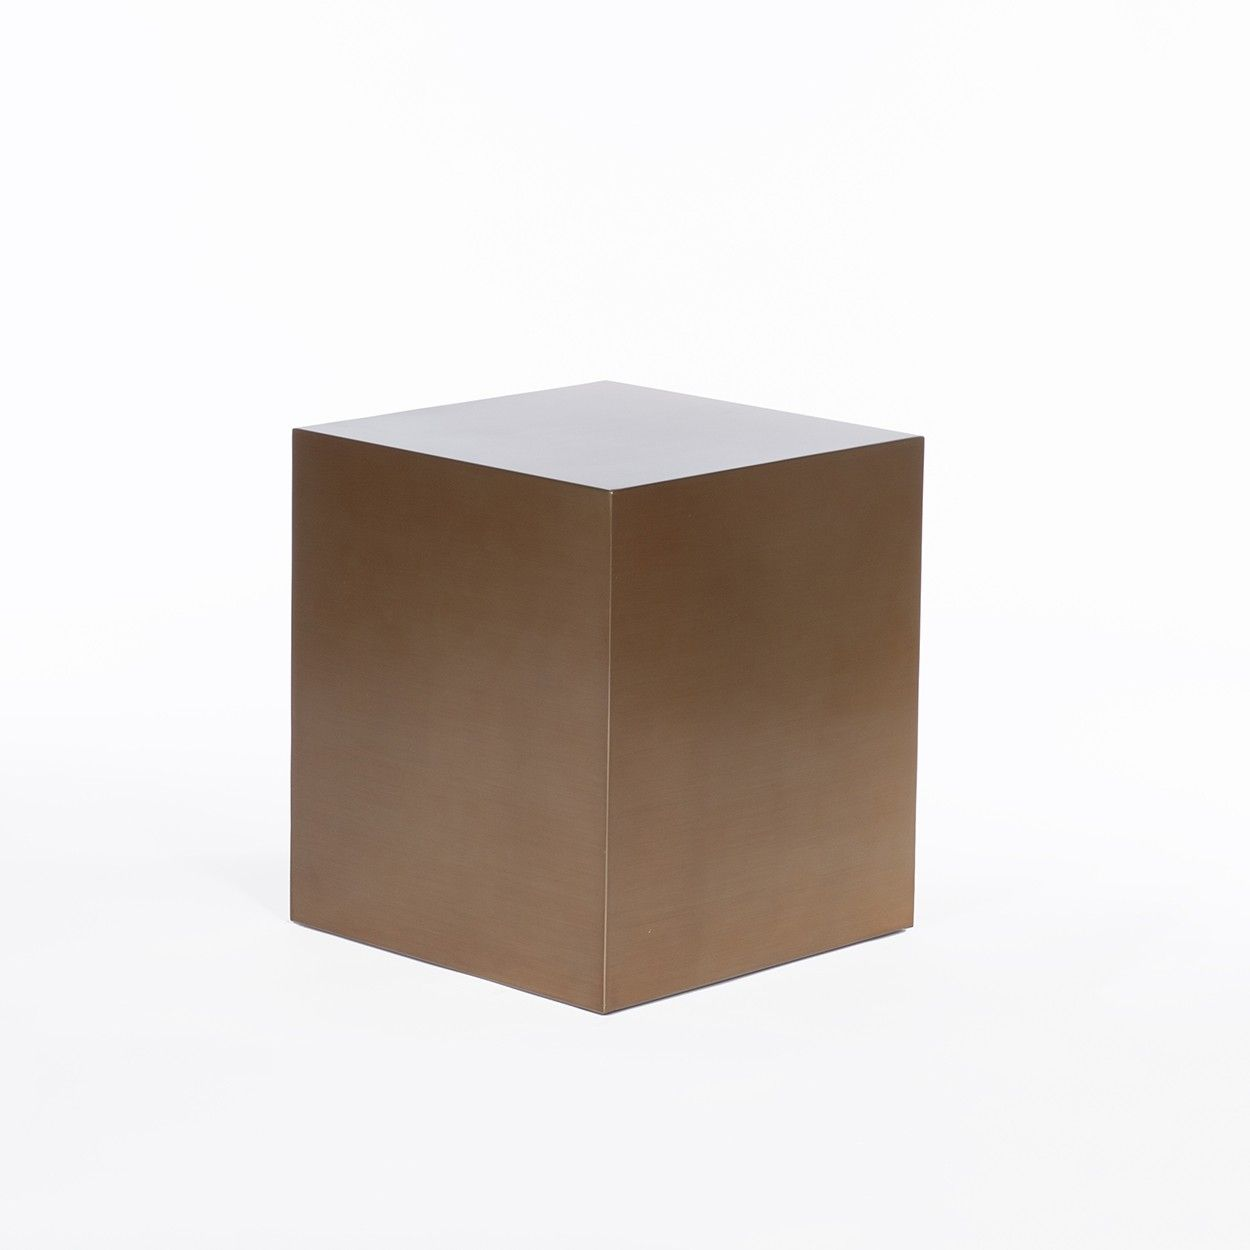 Brass Drum Side Table Square New Product Products Pinterest - Brass drum side table